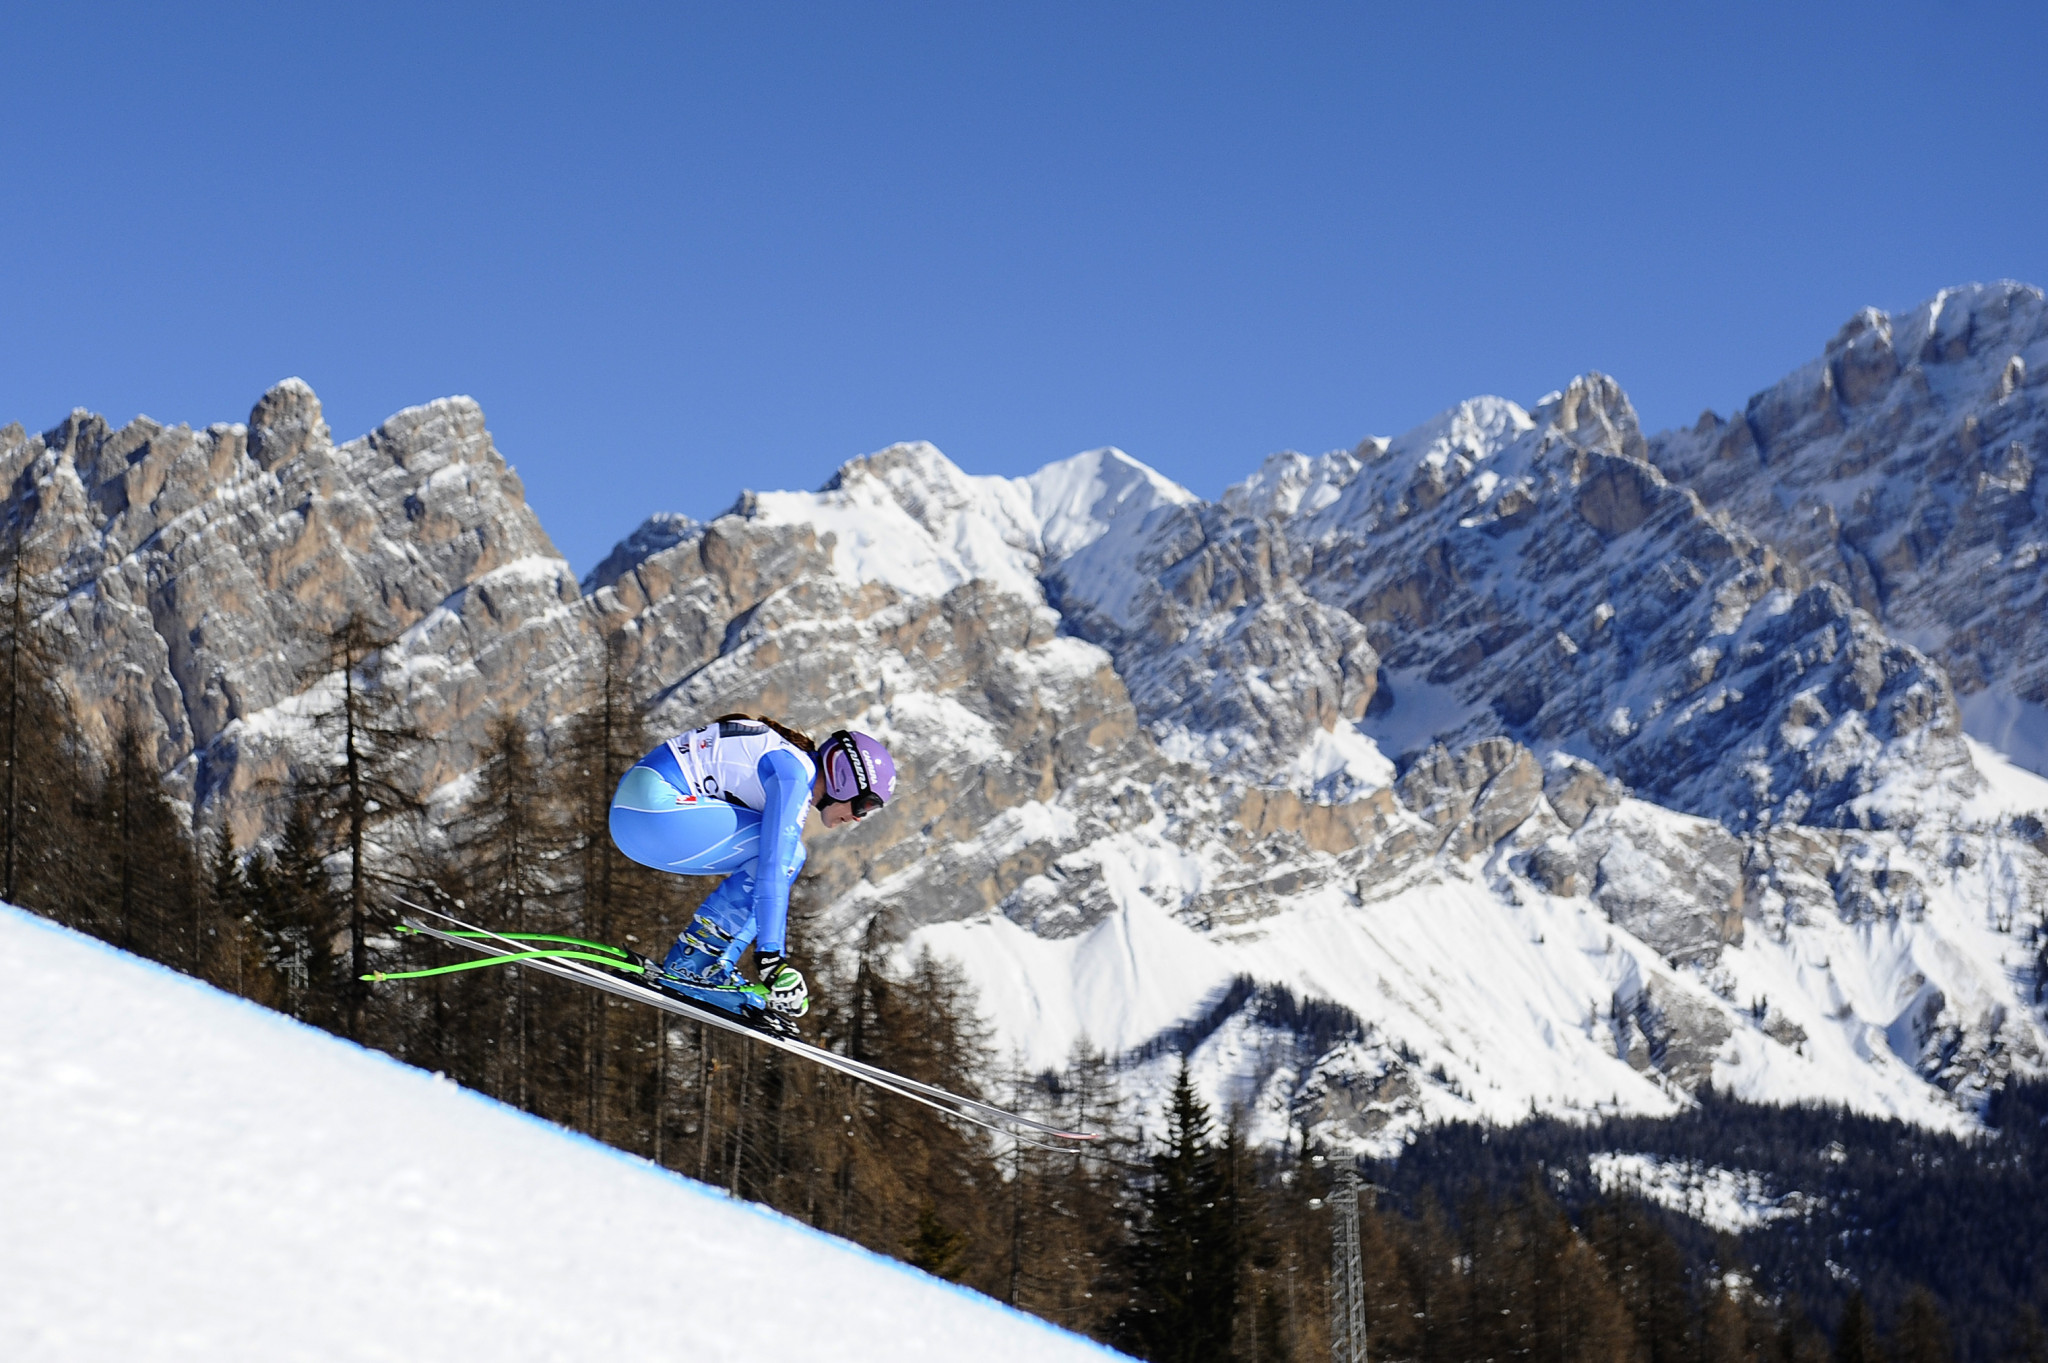 Organisers have requested that Cortina d'Ampezzo stage the Alpine Ski World Championships in 2021 instead ©Getty Images